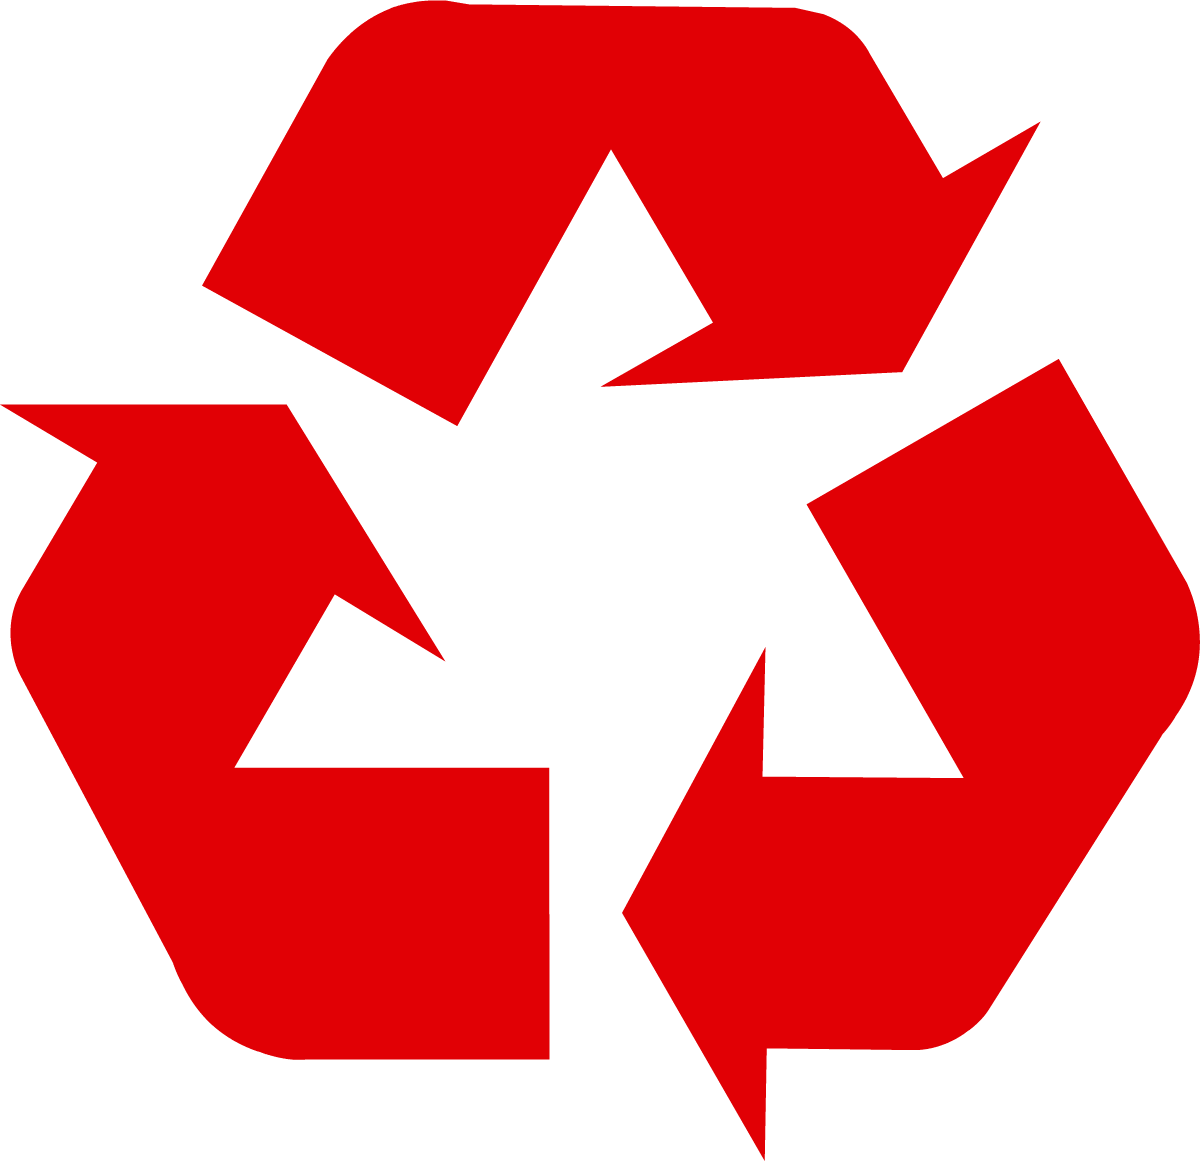 Recycle vector png. Download recycling symbol the